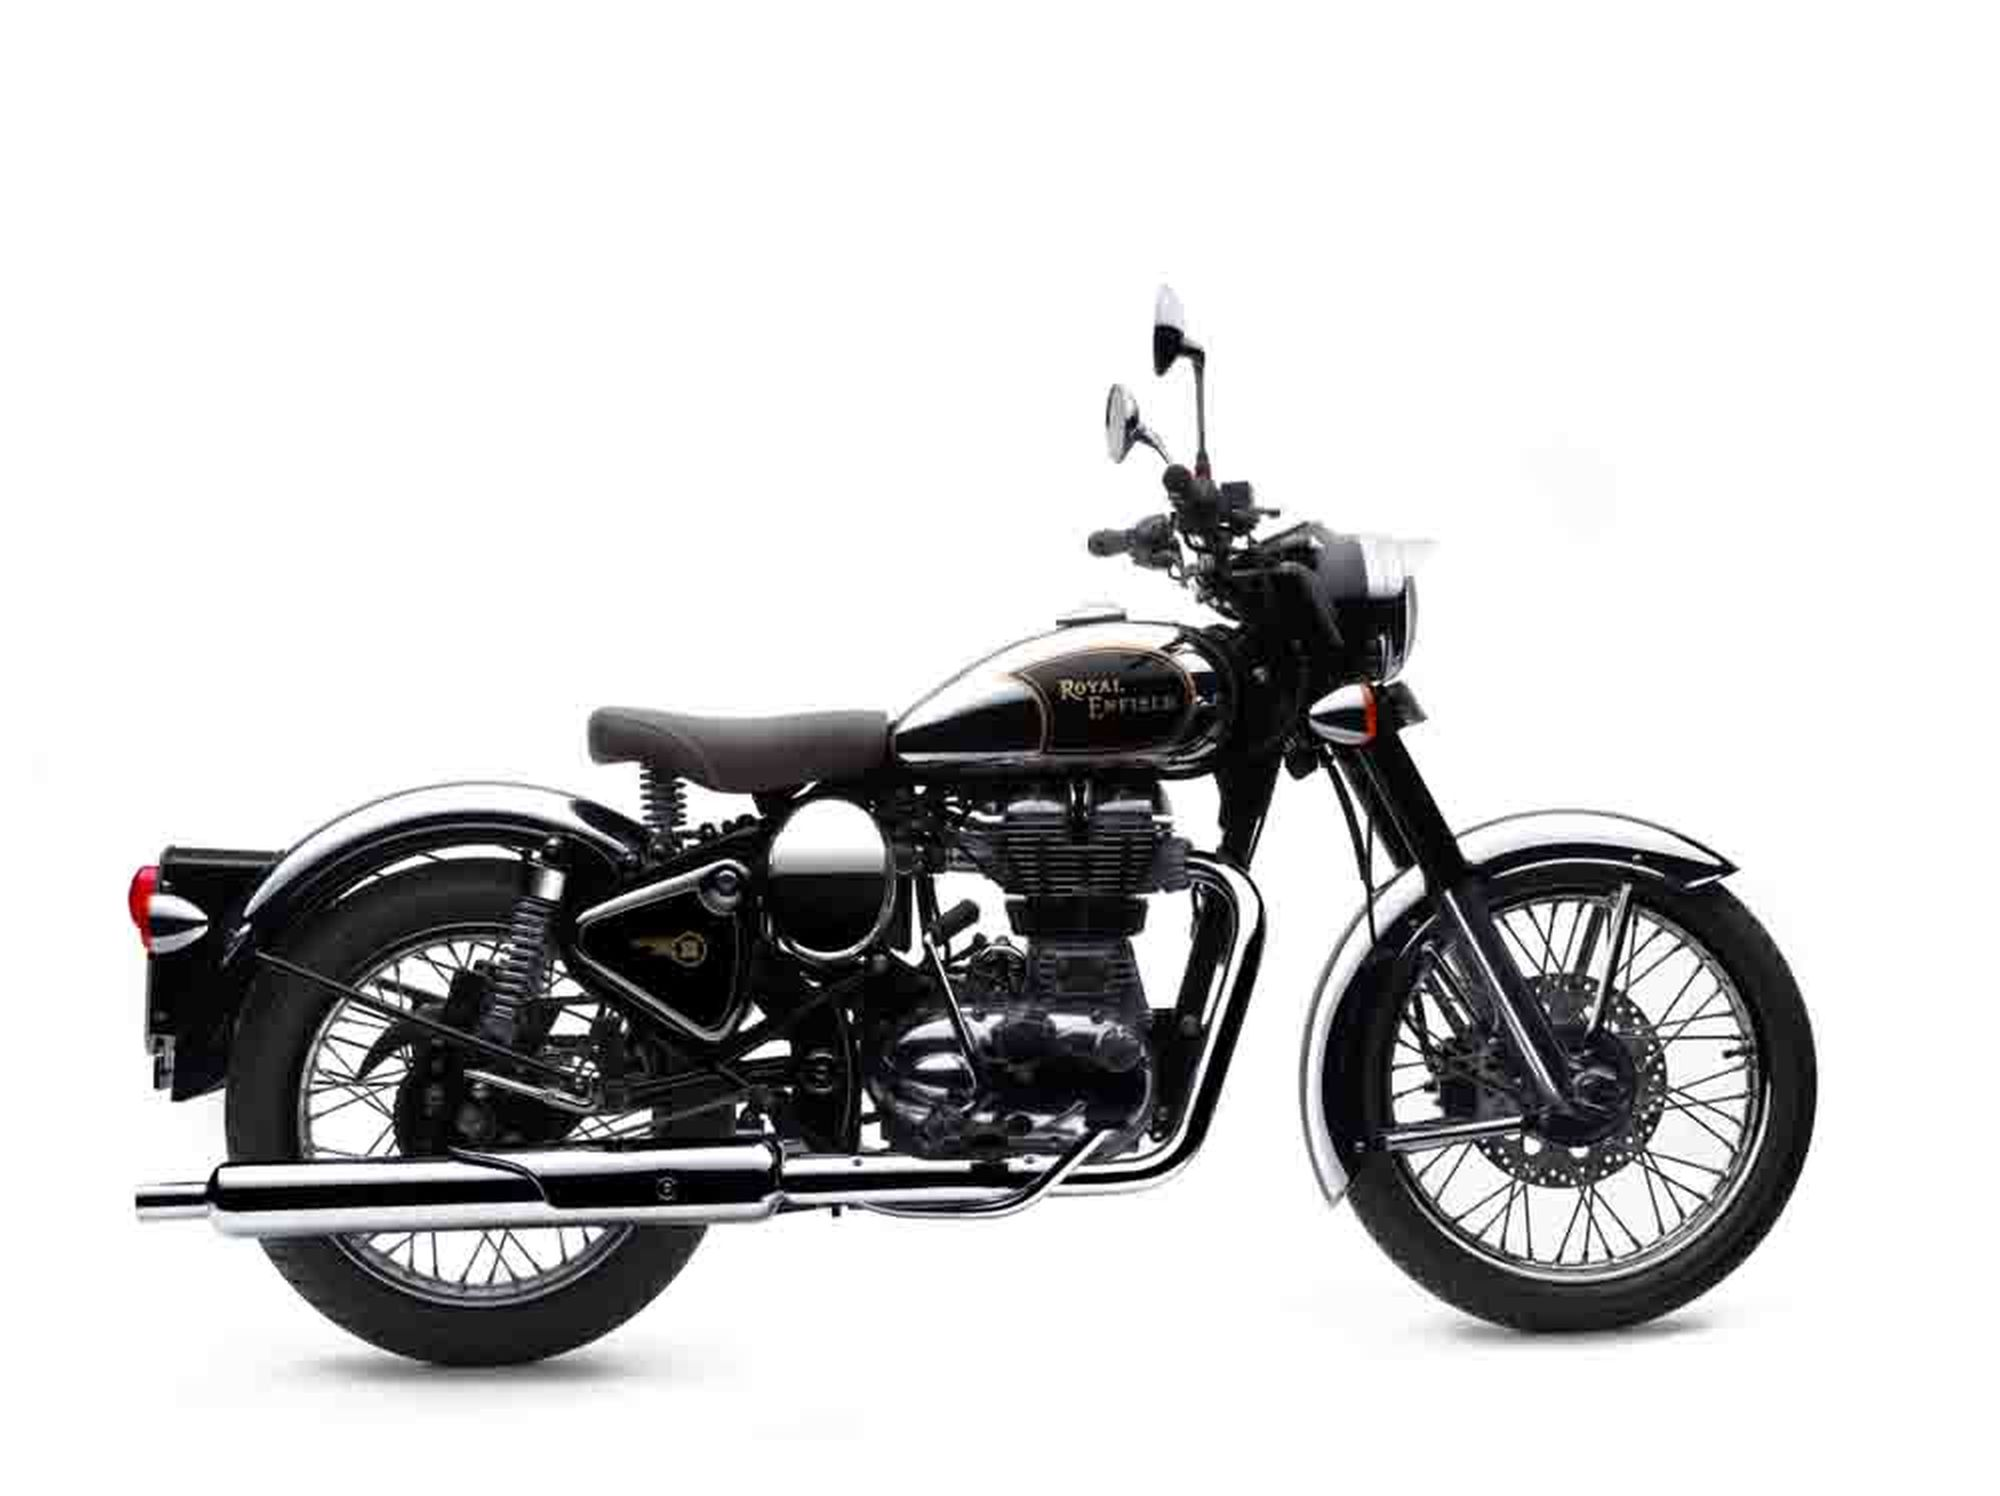 gebrauchte royal enfield bullet 500 classic chrome motorr der kaufen. Black Bedroom Furniture Sets. Home Design Ideas